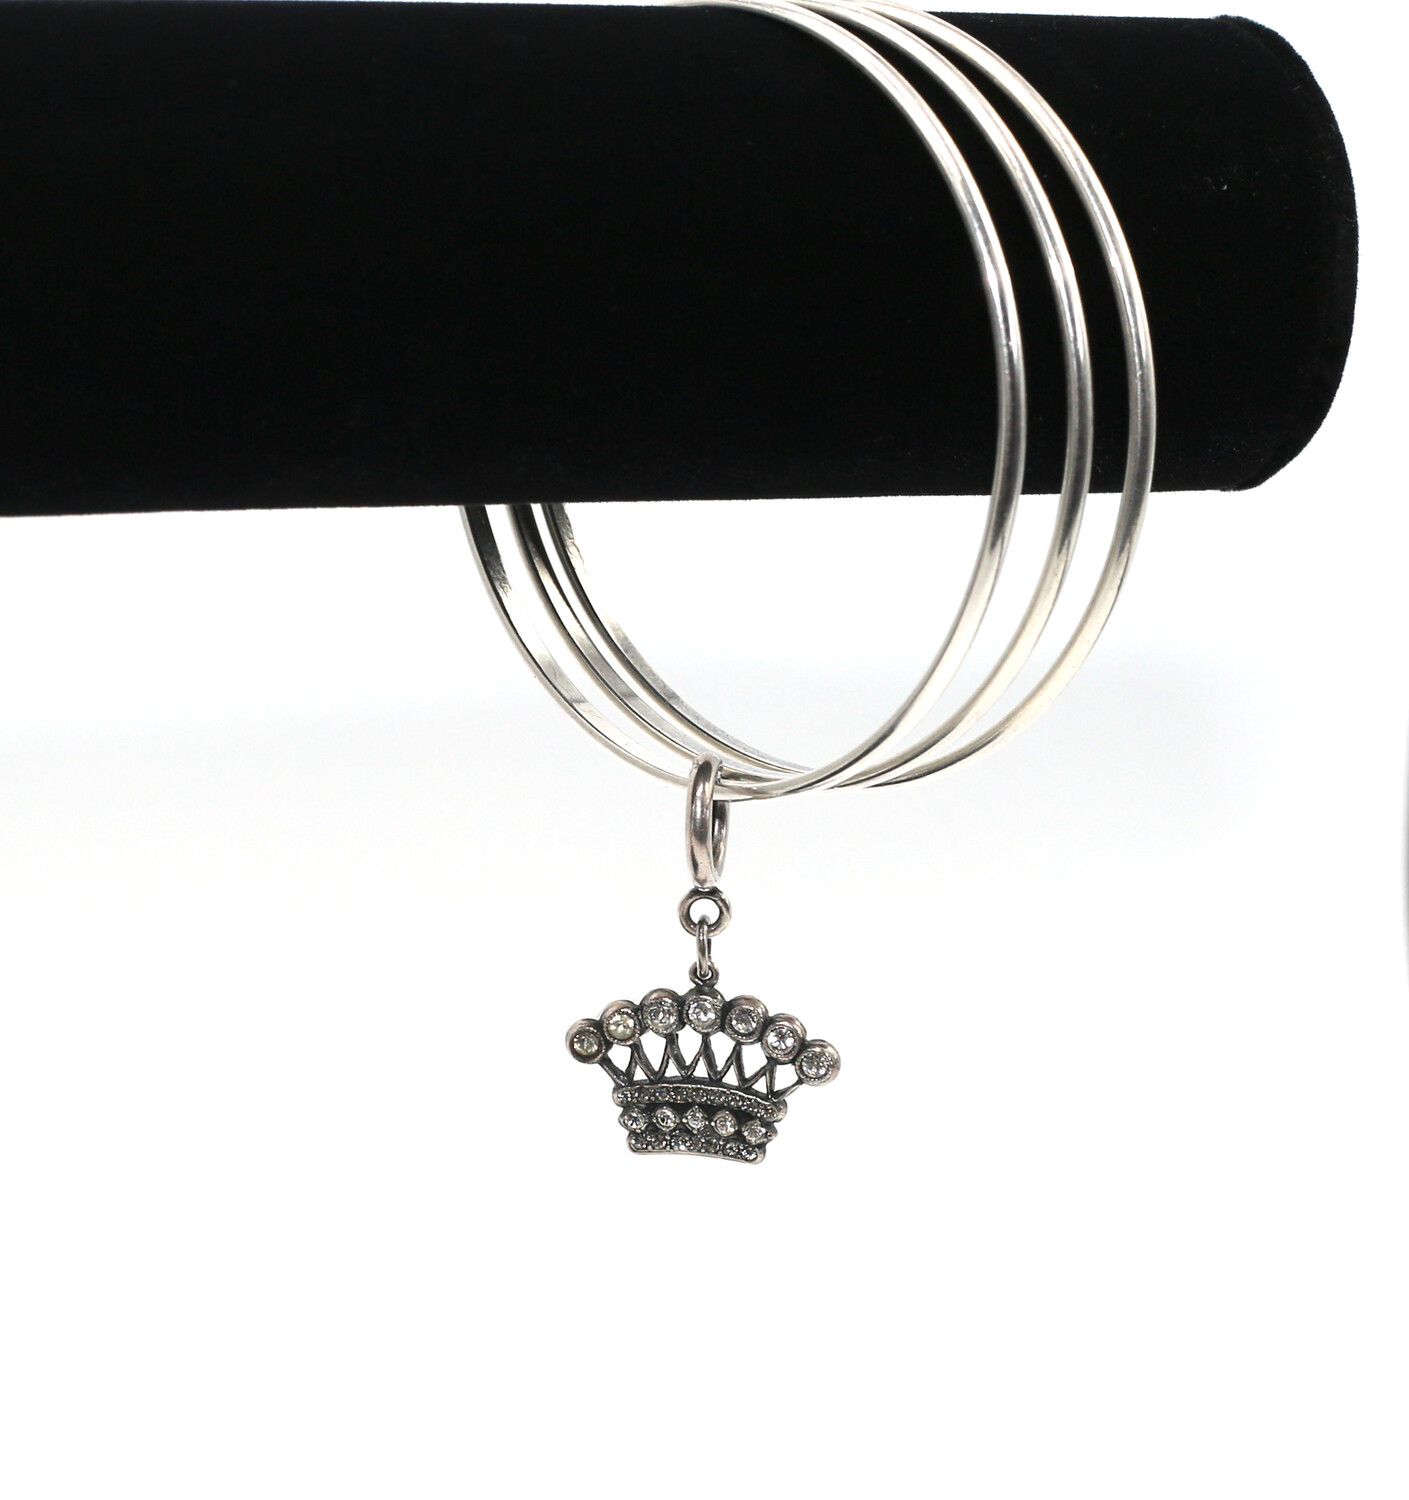 CLASSIC SILVER BANGLE with ANTIQUE CROWN CHARM